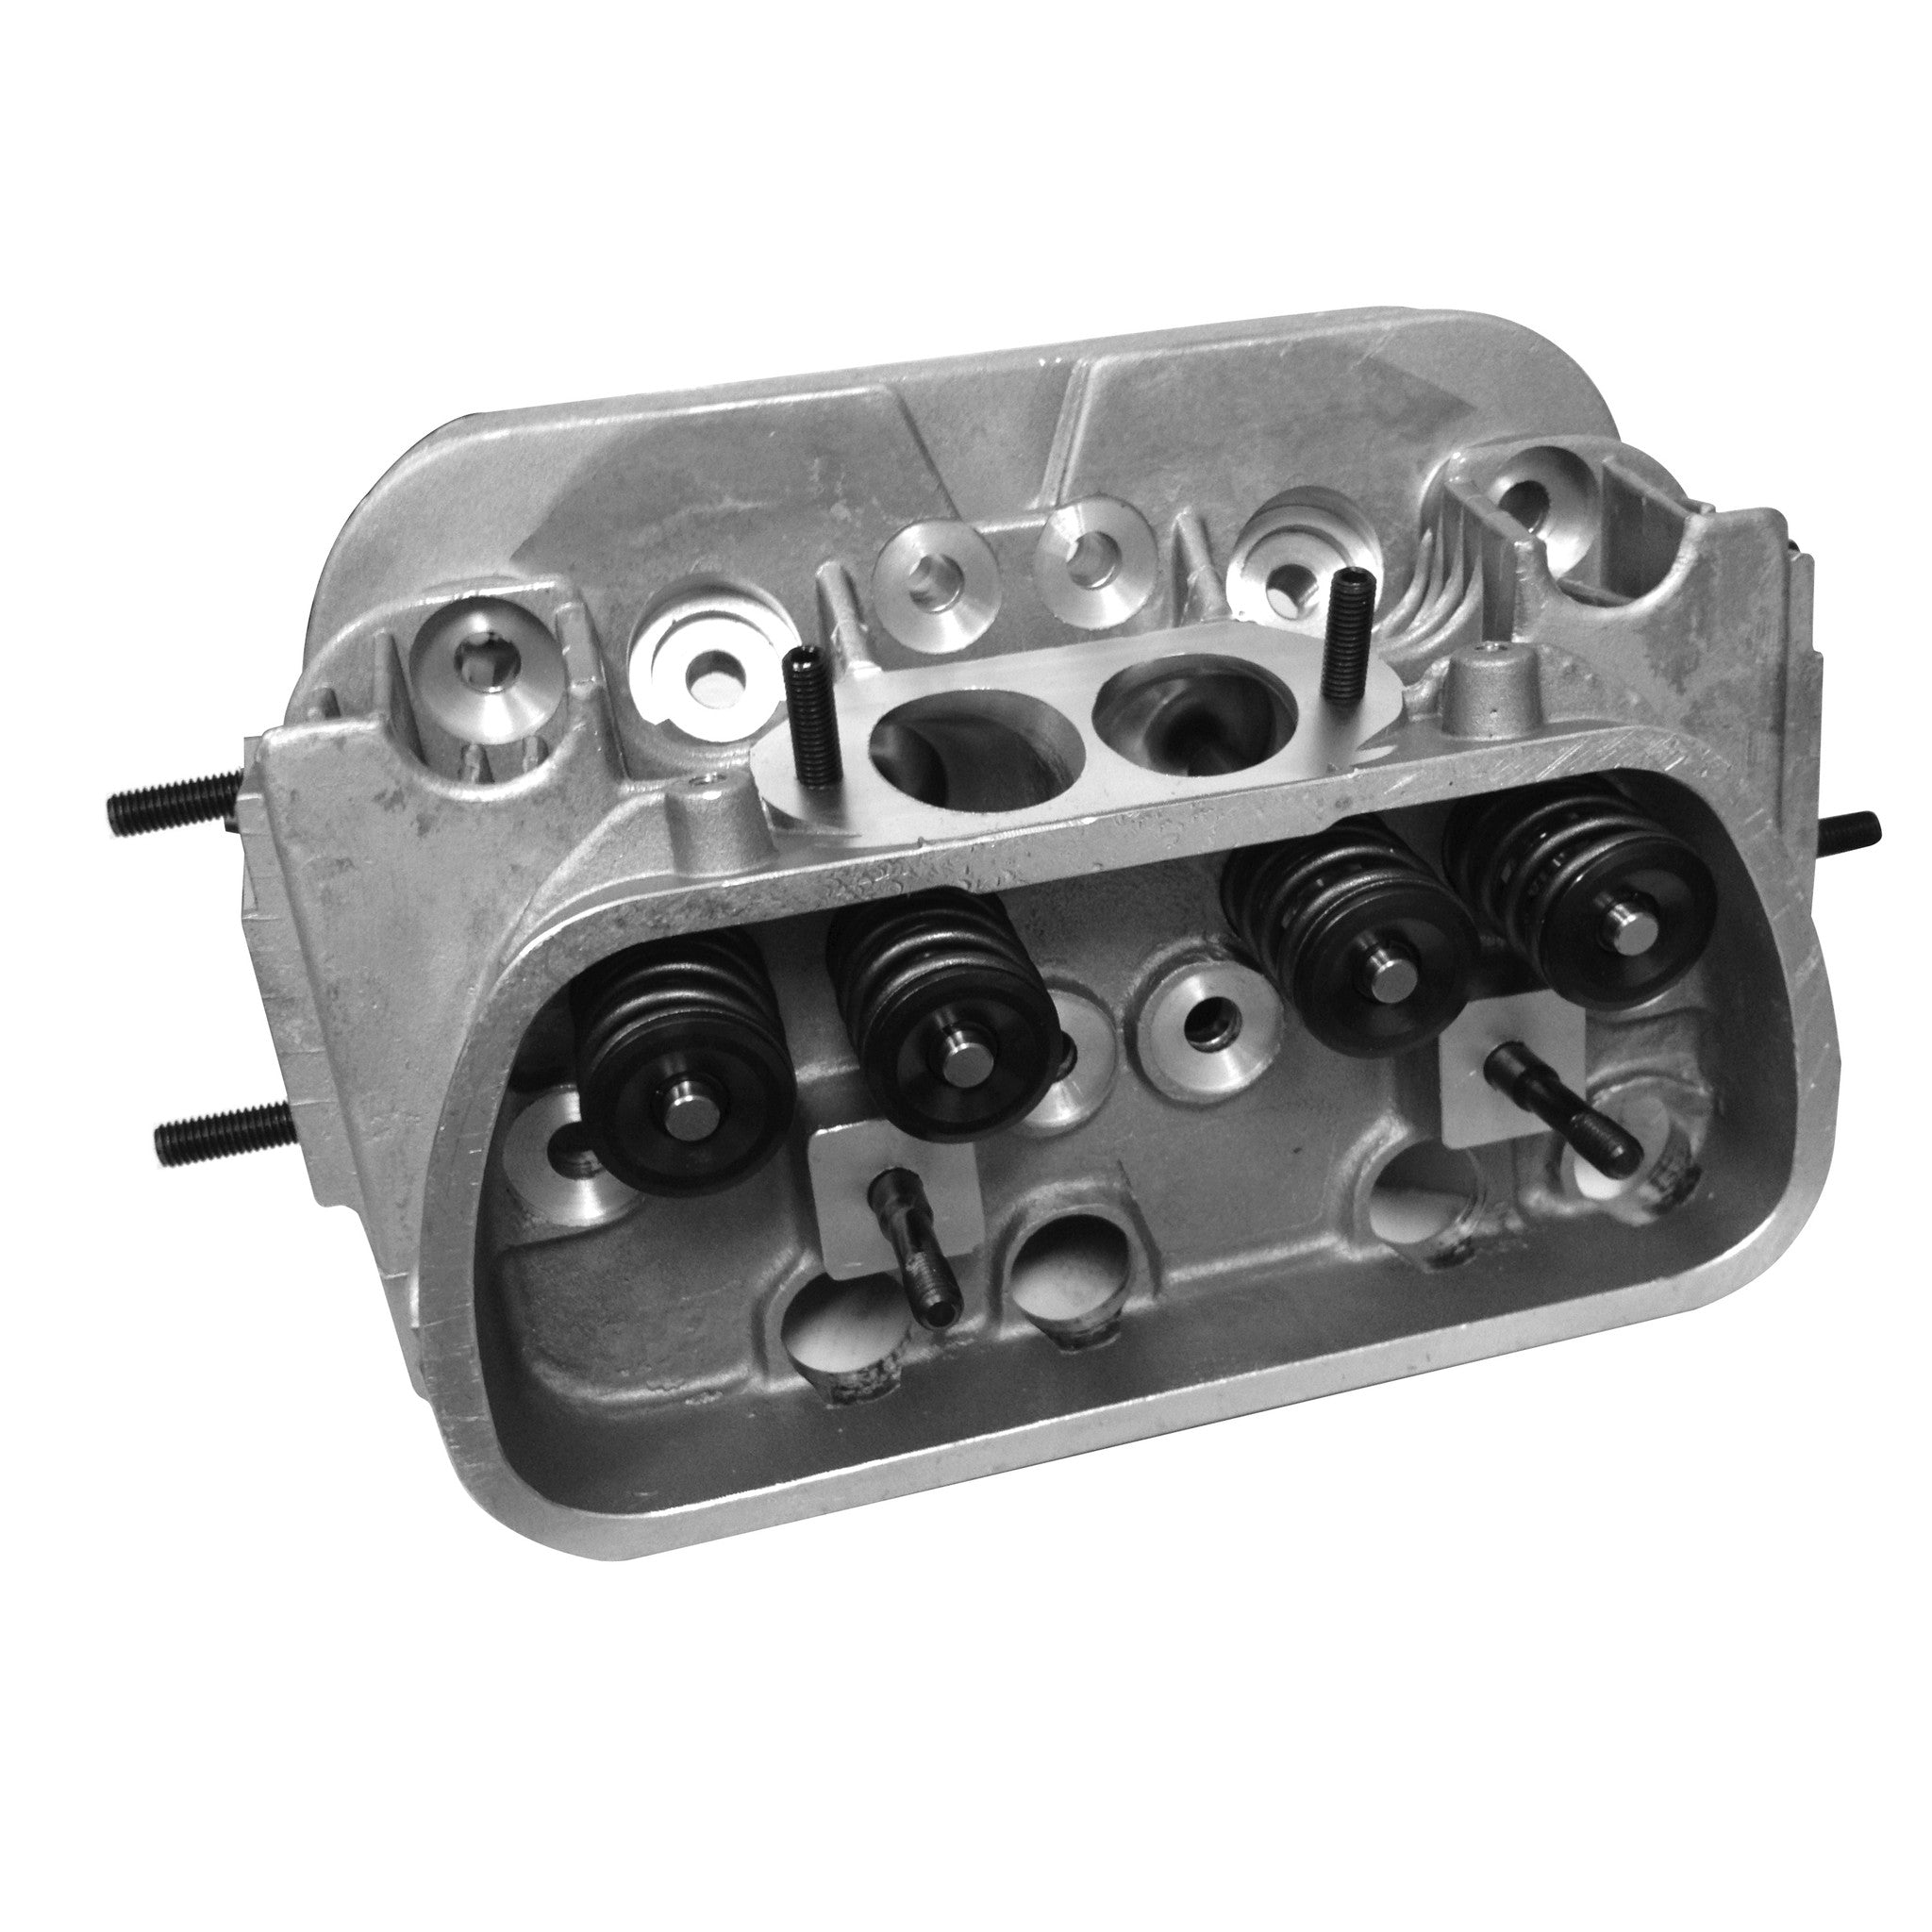 Set of Stage 3 Port & Polish 501 Series Performance Head 42